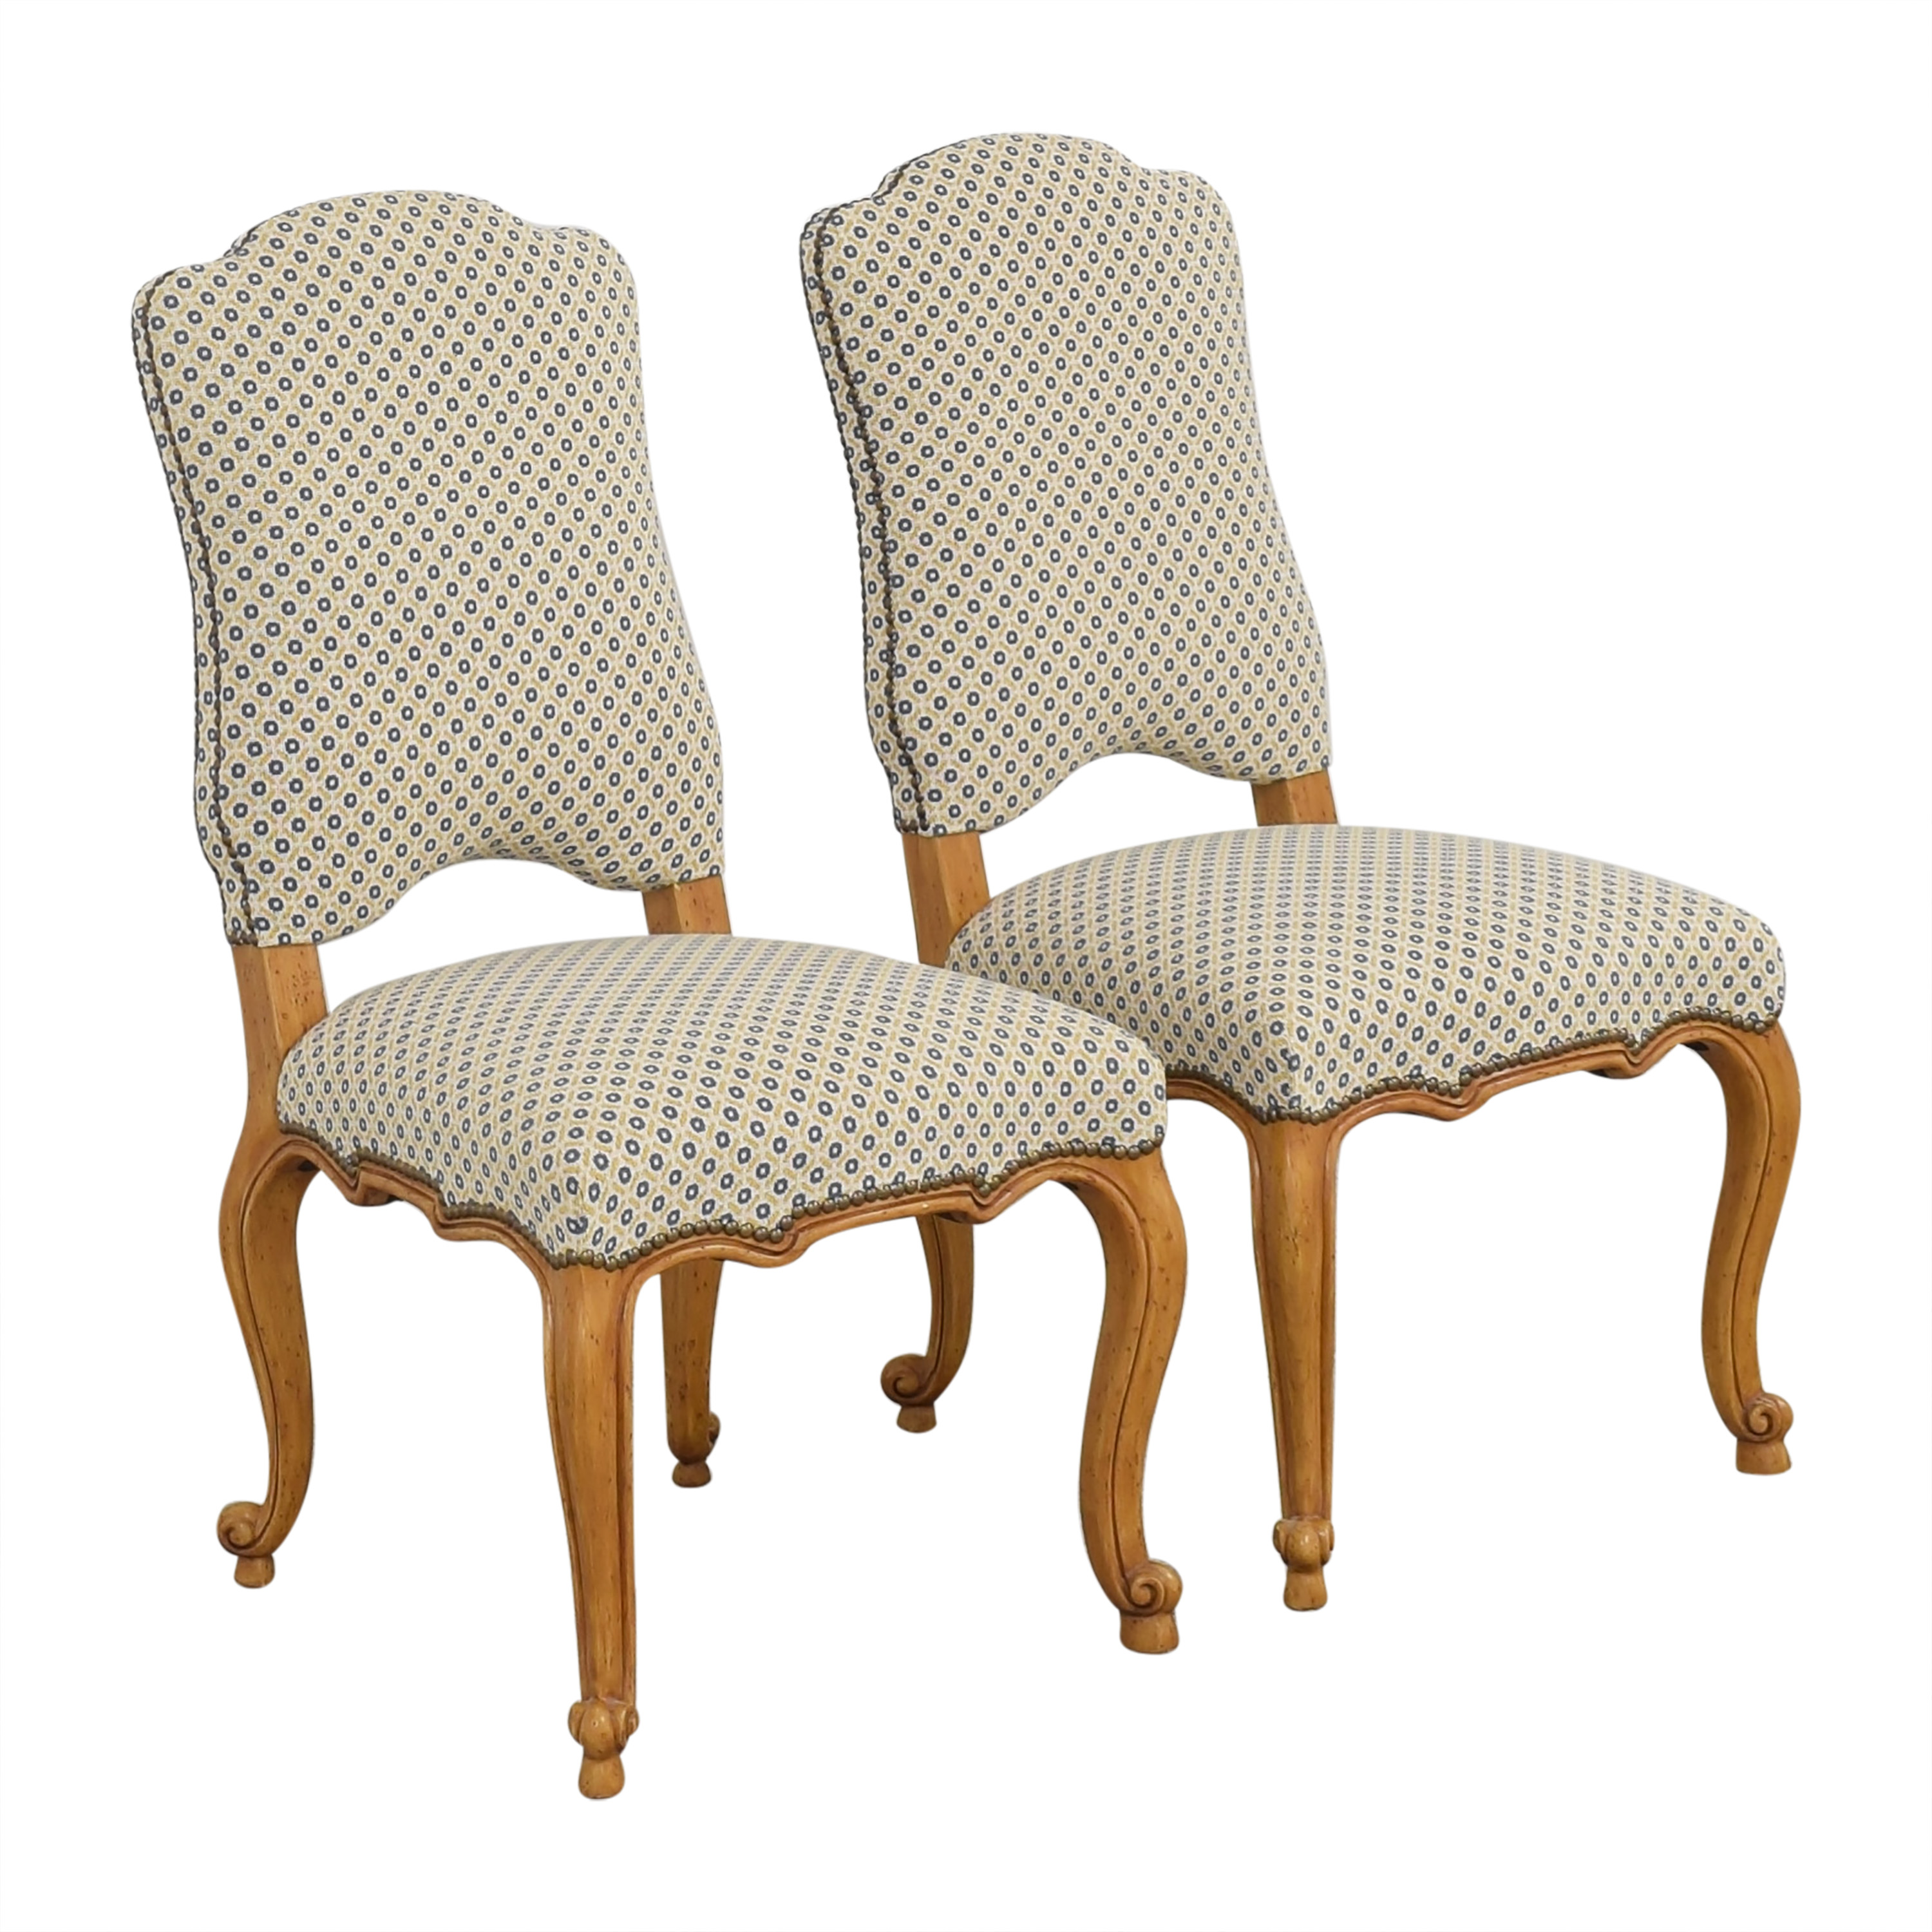 Minton-Spidell Minton-Spidell Regence Dining Side Chairs price